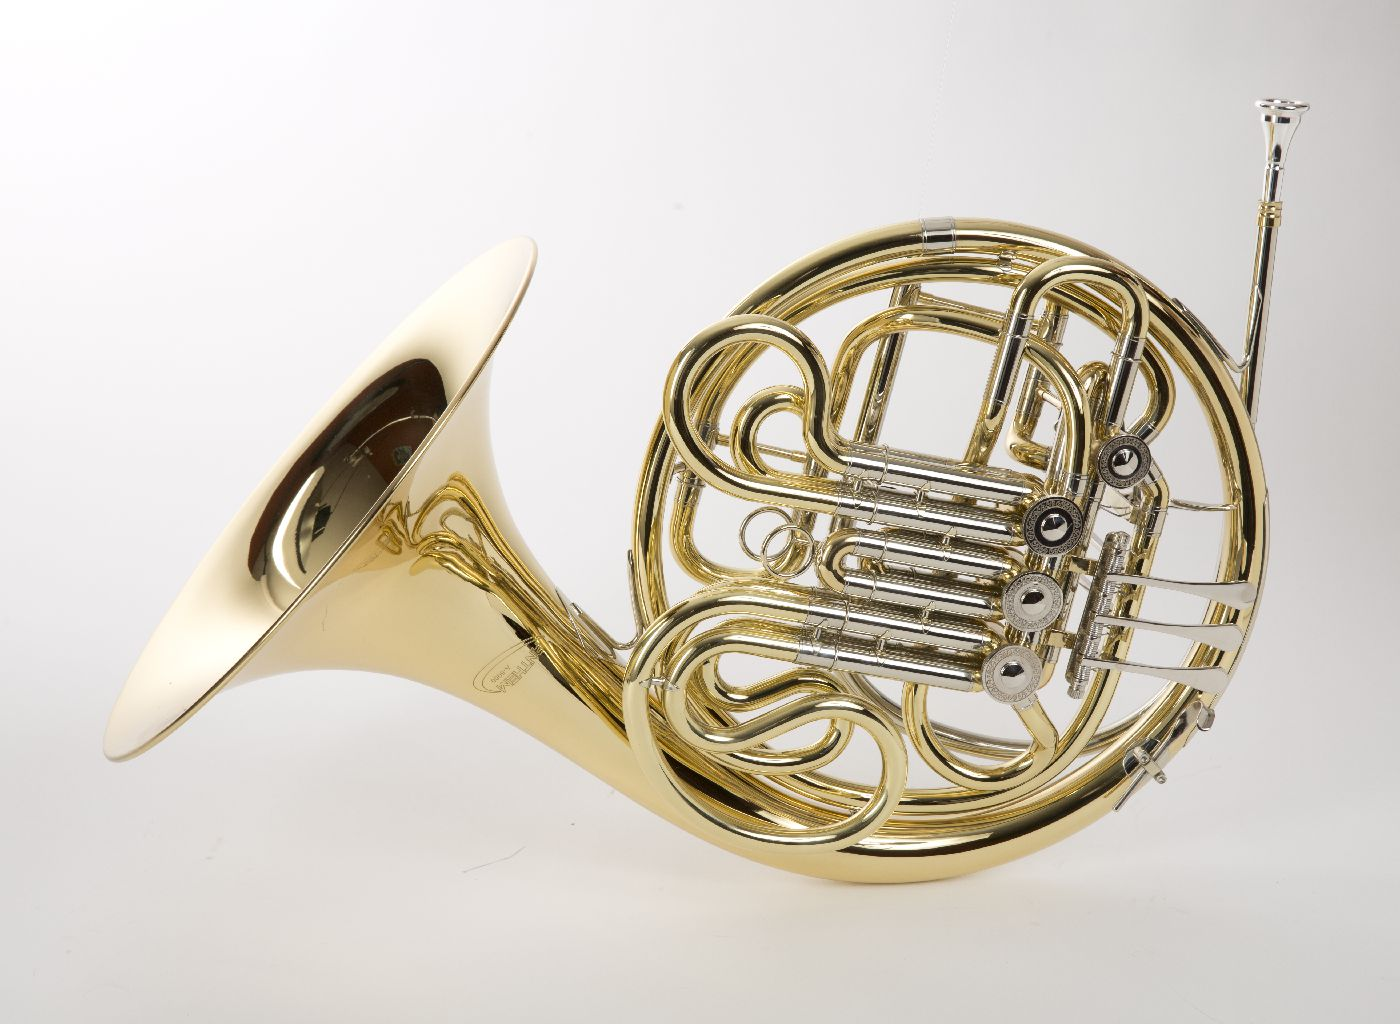 ANTHEM A-5000 FRENCH HORN